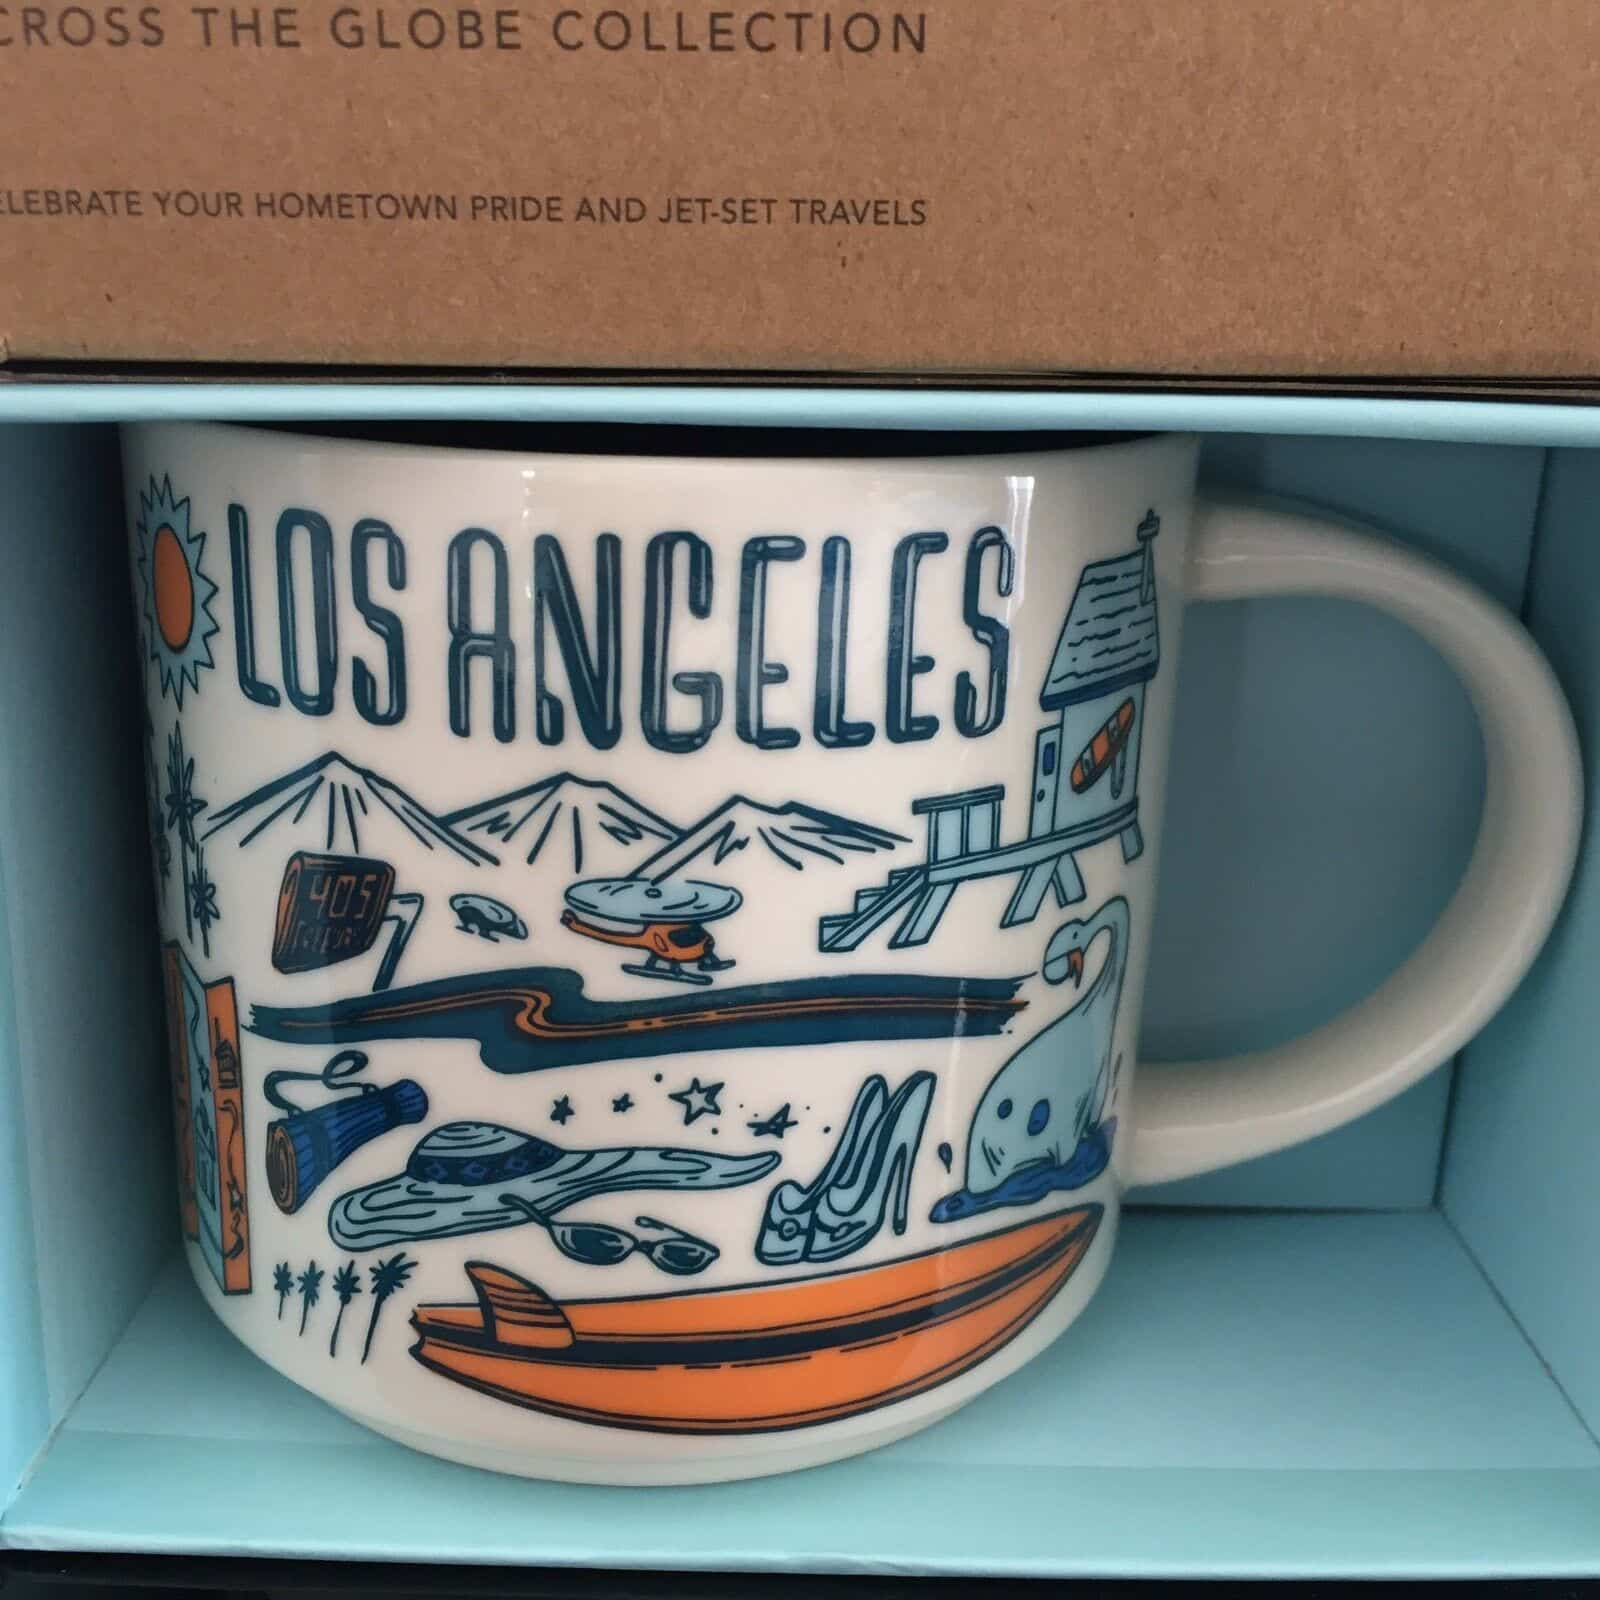 starbucks-los-angeles-been-there-coffee-mug-beach-film-surf